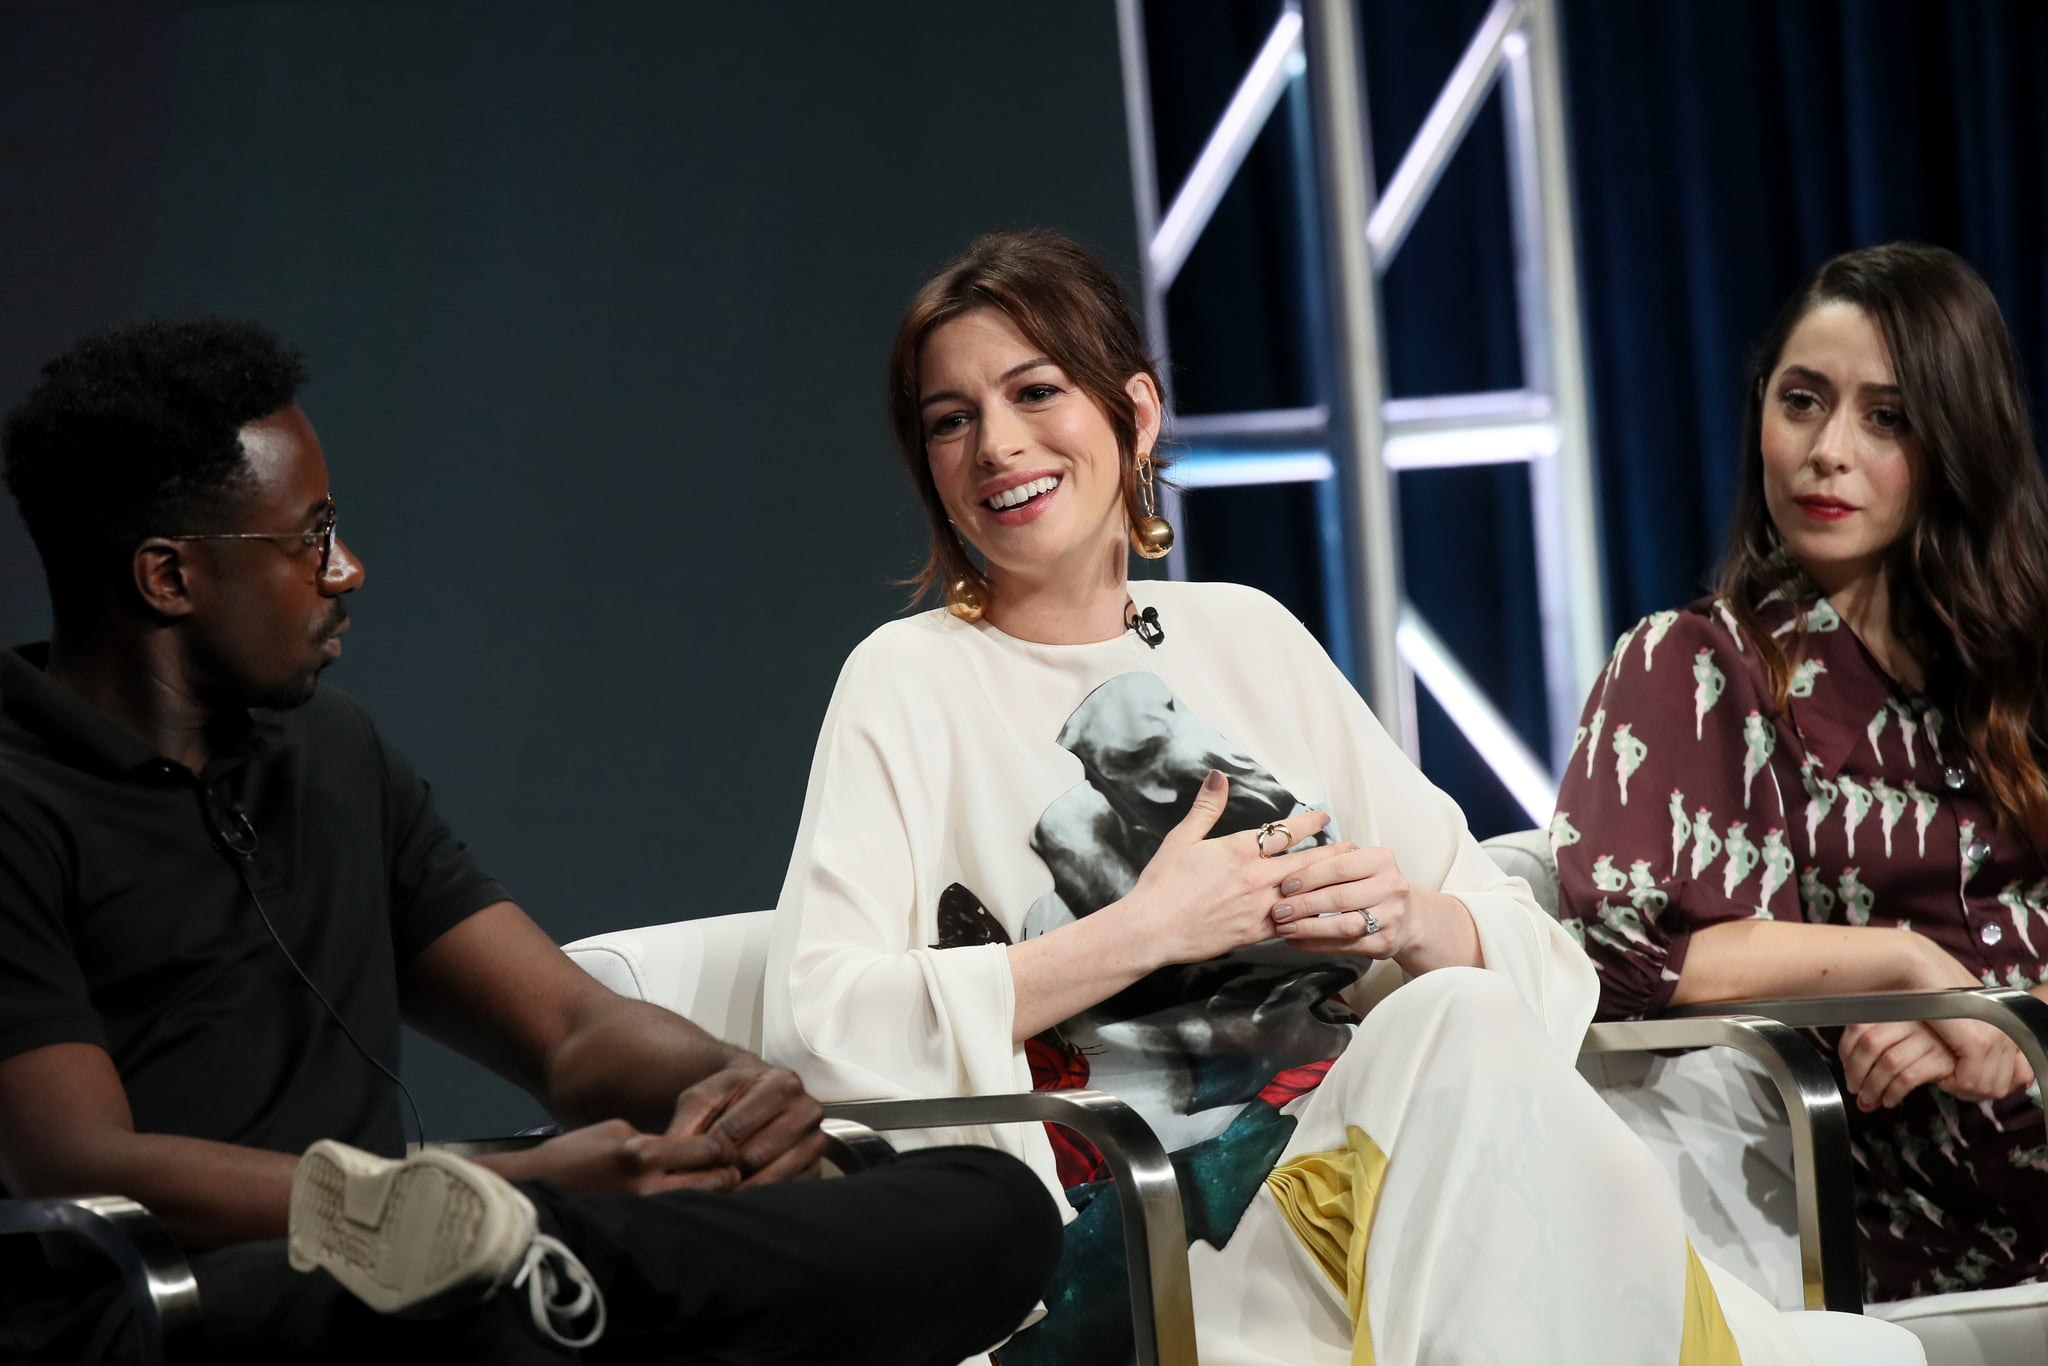 BEVERLY HILLS, CALIFORNIA - JULY 27: (L-R) Gary Carr, Anne Hathaway and Cristin Milioti of 'Modern Love' speak onstage during the Amazon Prime Video segment of the Summer 2019 Television Critics Association Press Tour at The Beverly Hilton Hotel on on July 27, 2019 in Beverly Hills, California. (Photo by David Livingston/Getty Images)